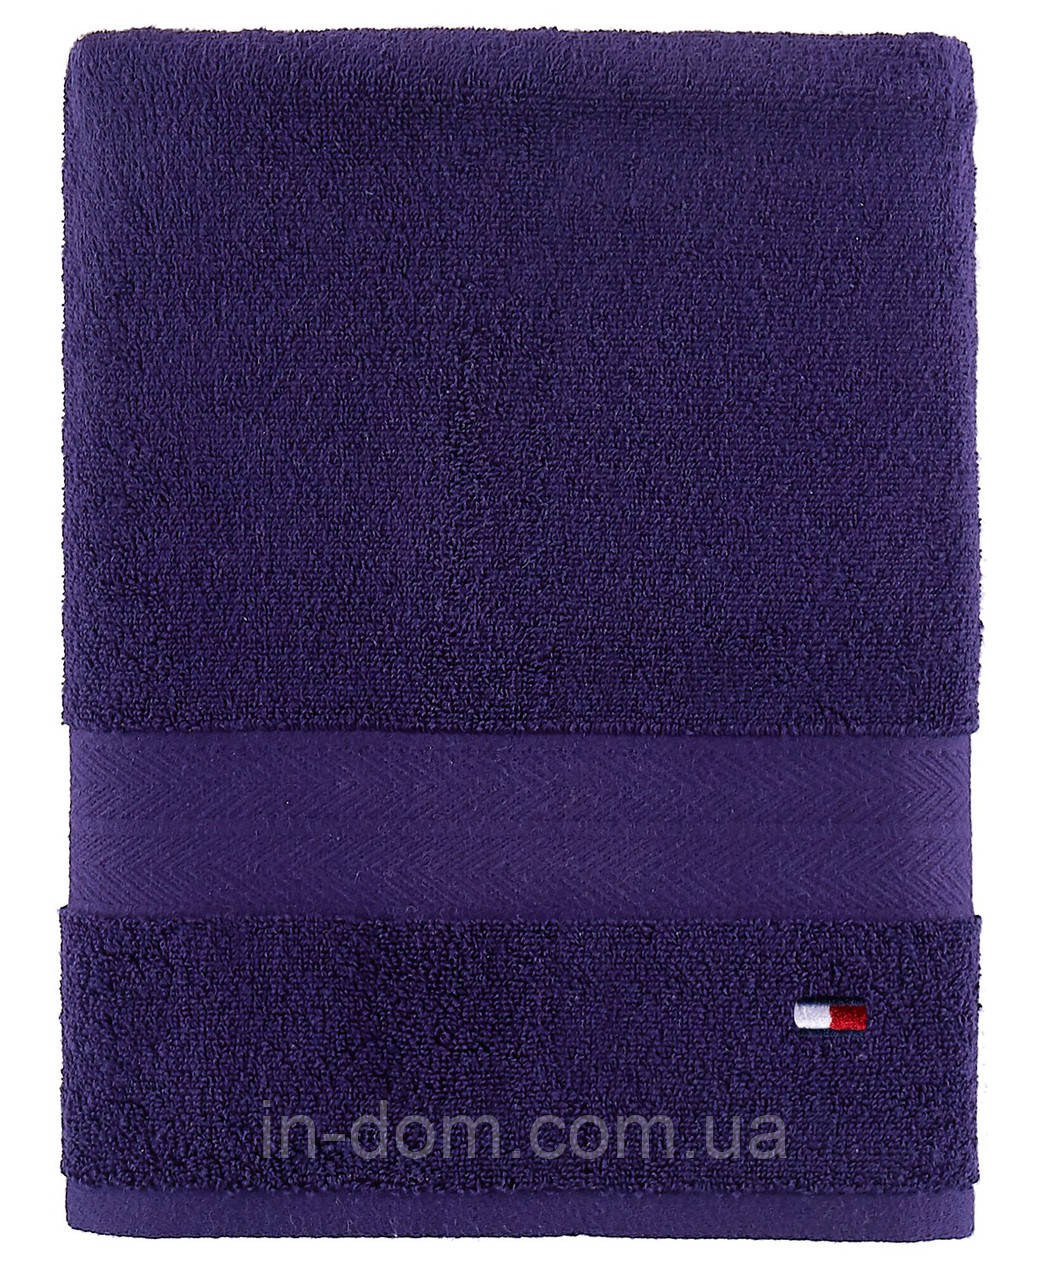 Tommy Hilfiger Modern American 76 x 138 cm Cotton Bath Towel банное полотенце 100% хлопок